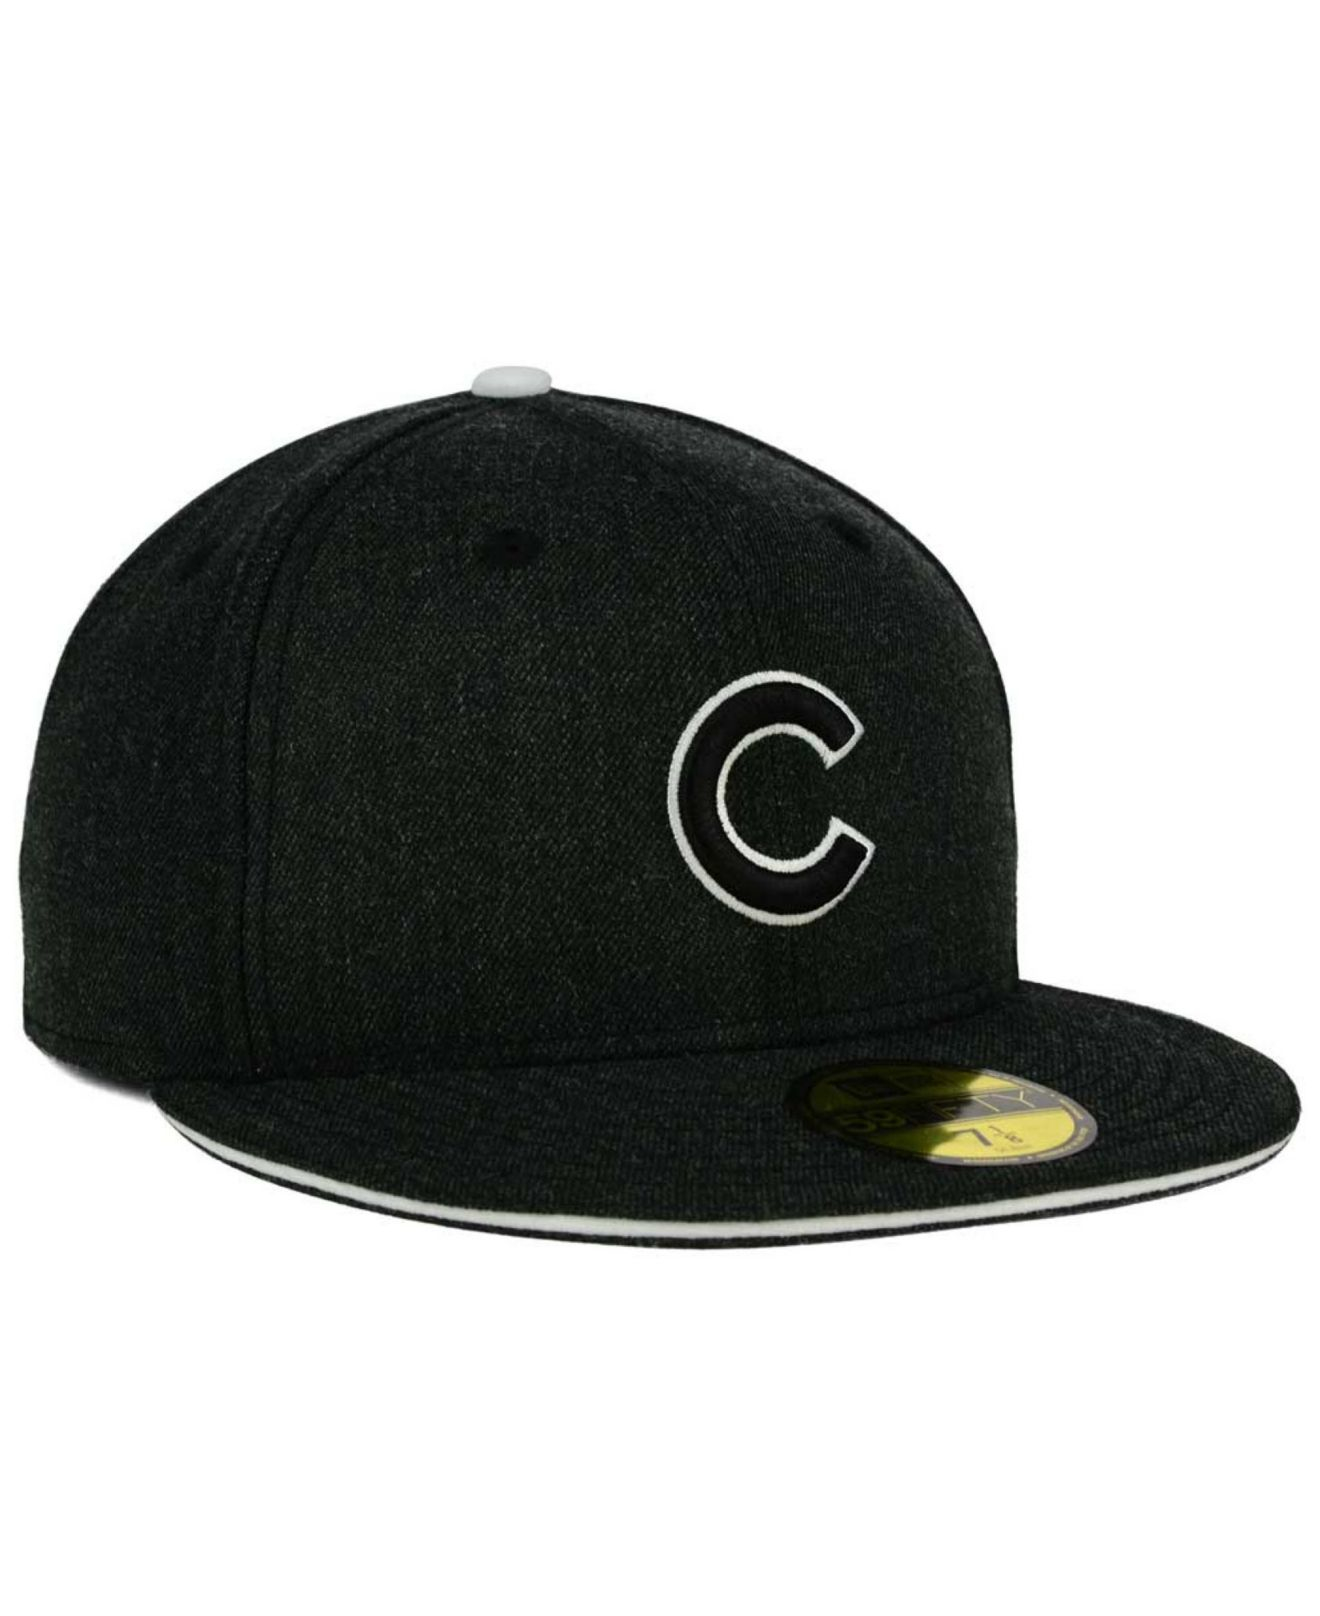 4db7d3eb2b2 Lyst - Ktz Chicago Cubs Heather Action 59fifty Cap in Black for Men